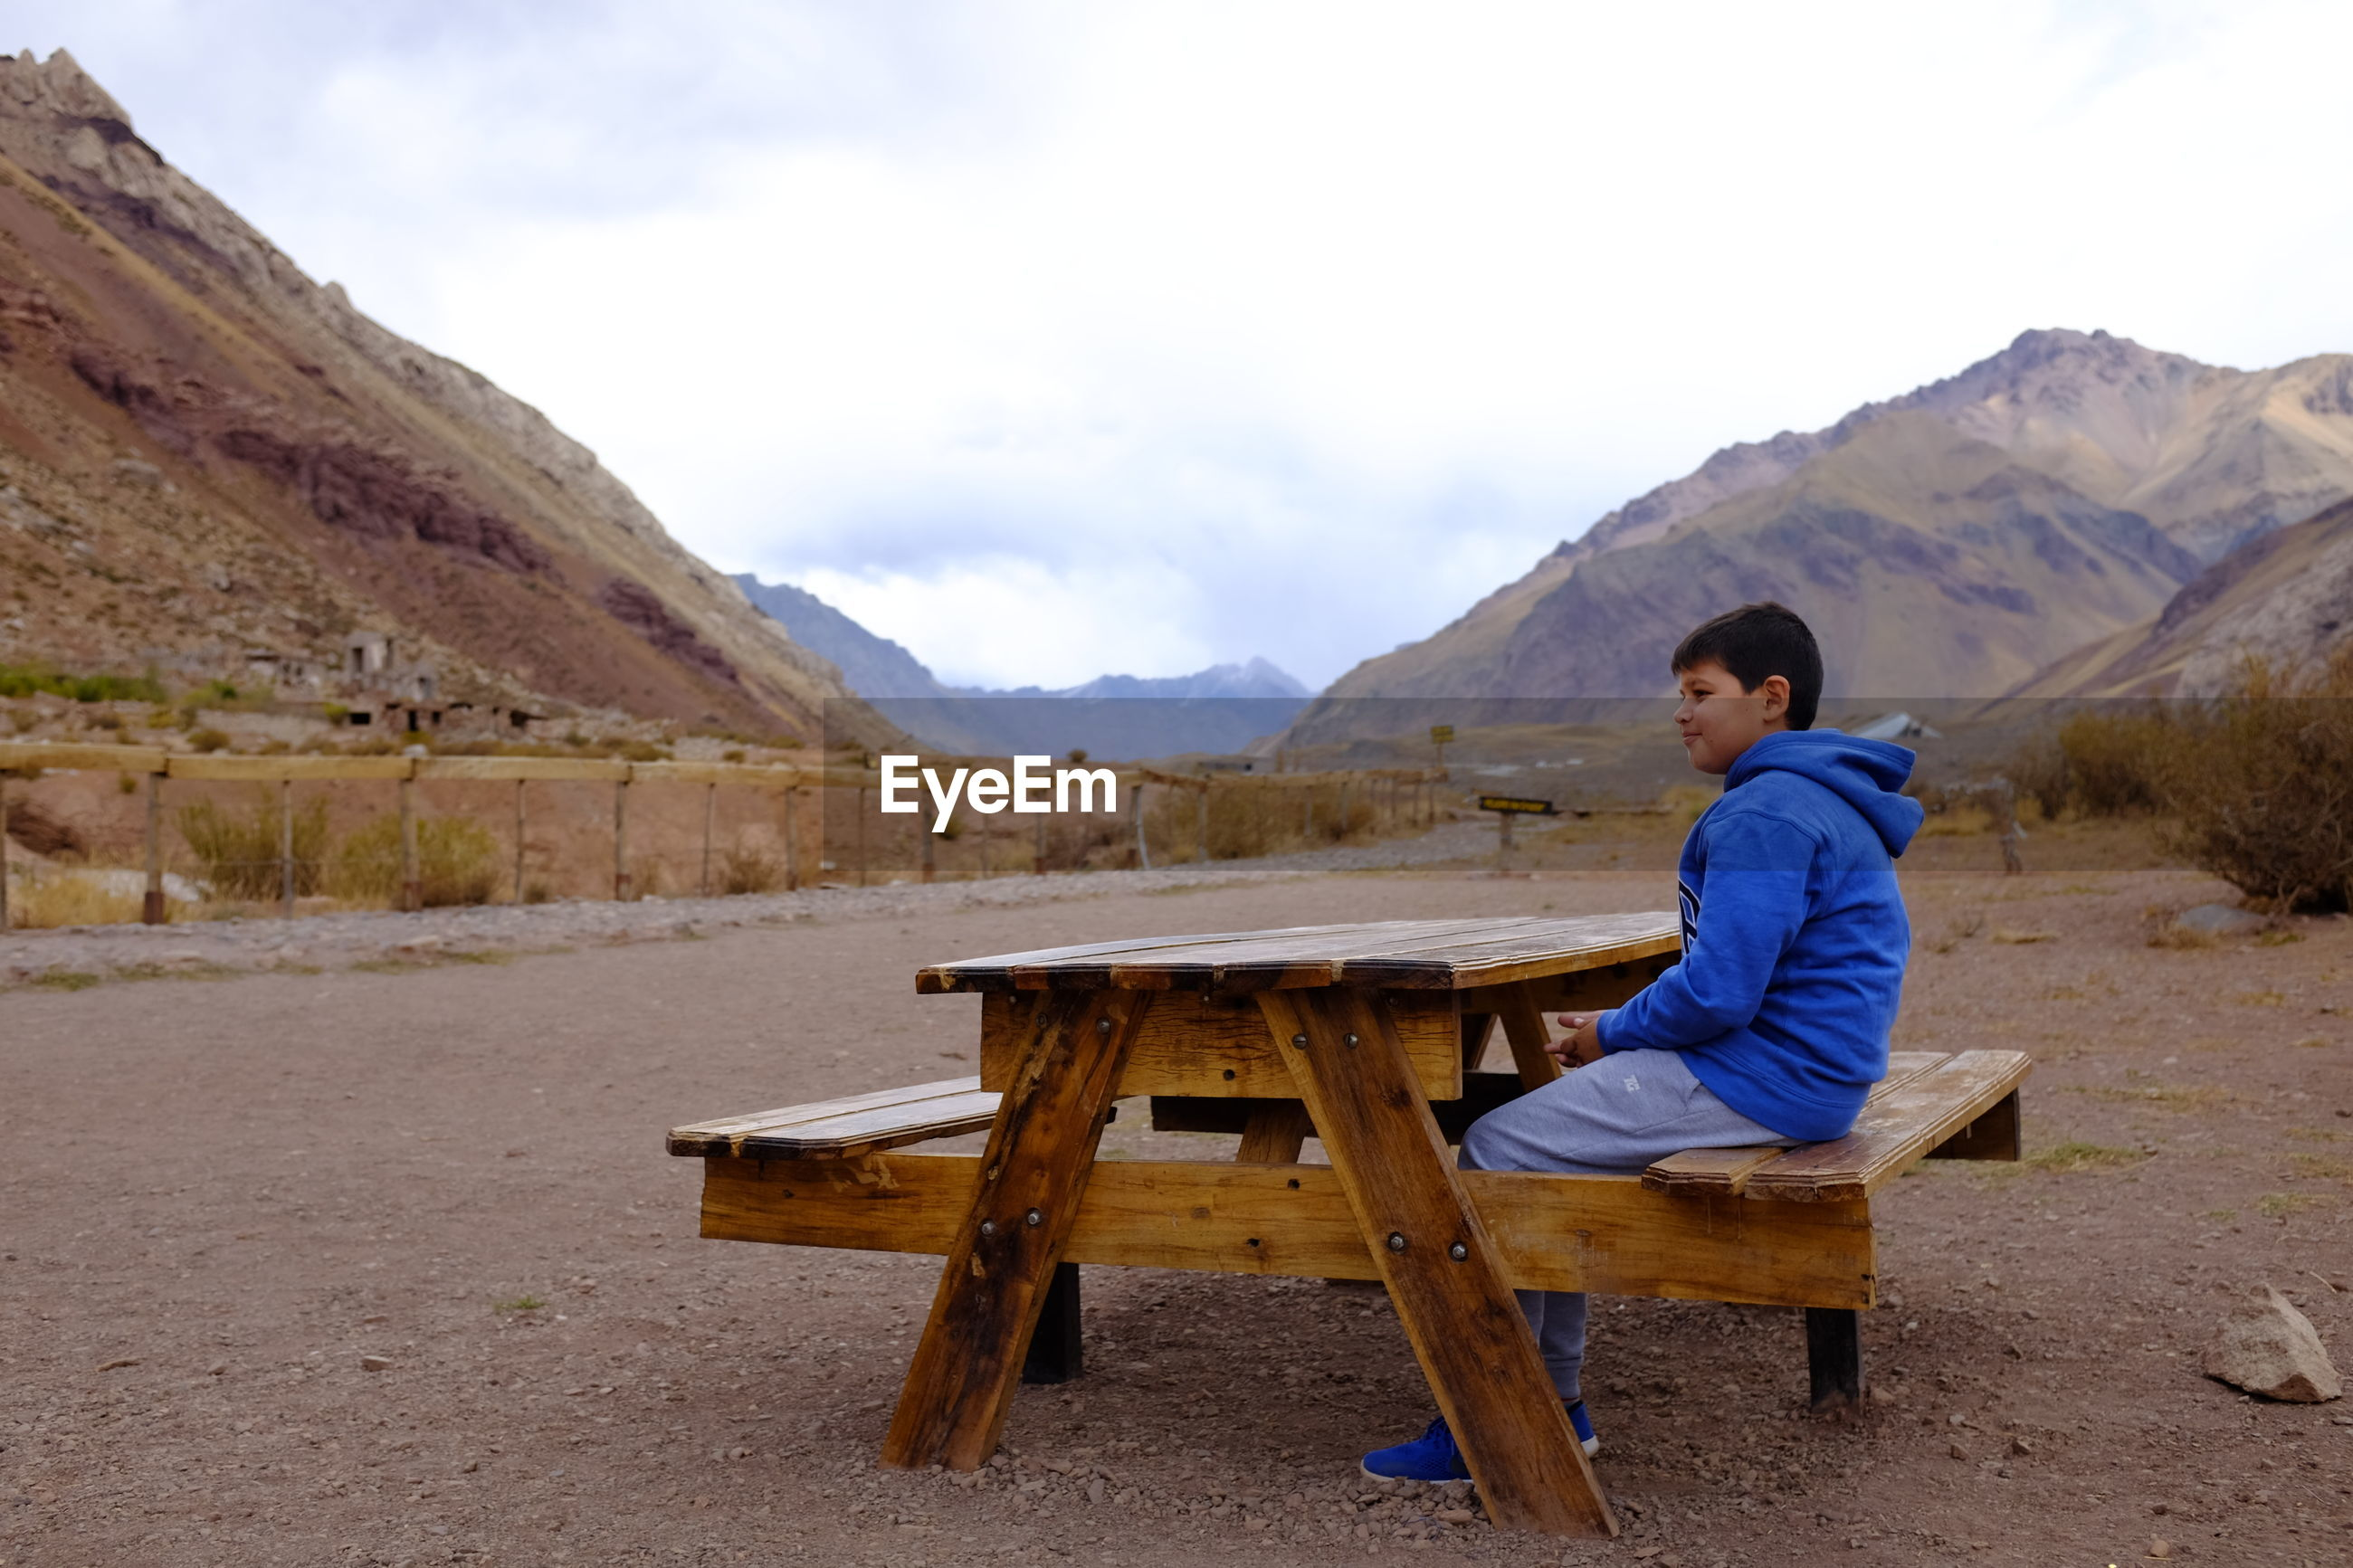 Boy looking away while sitting on seat against mountains